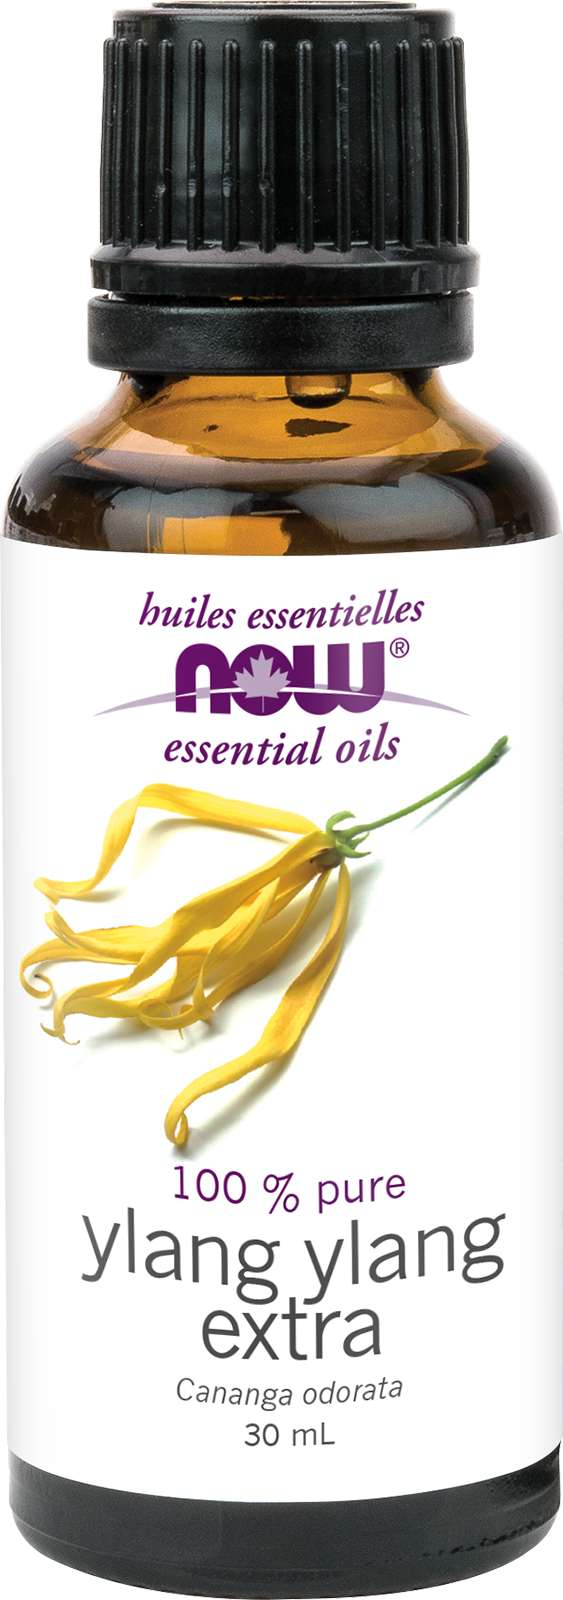 Ylang-Ylang Extra Oil(Cananga odorata genuina)30mL